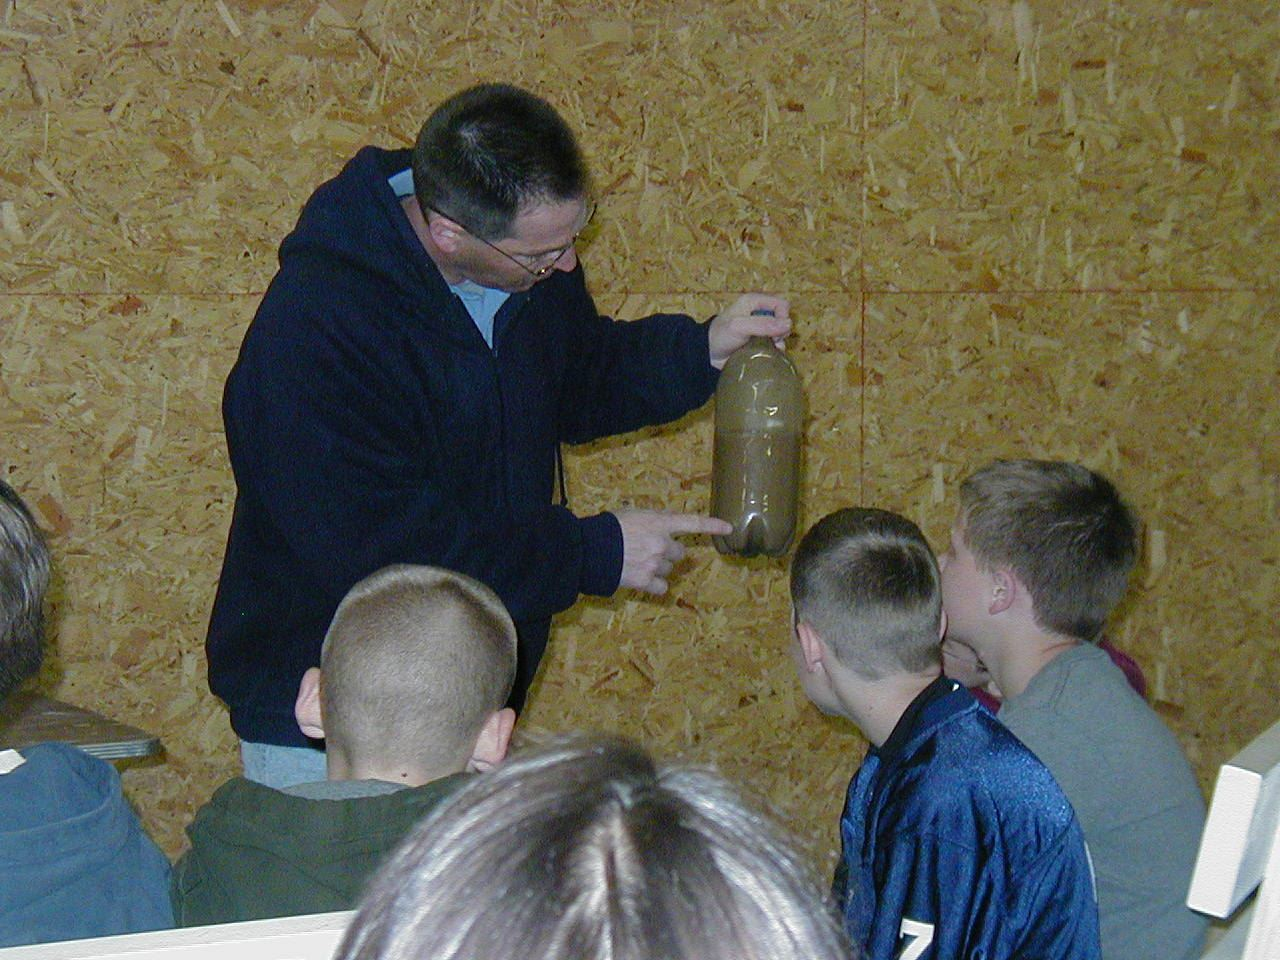 Students learn about soil and water conservation from conservation staff